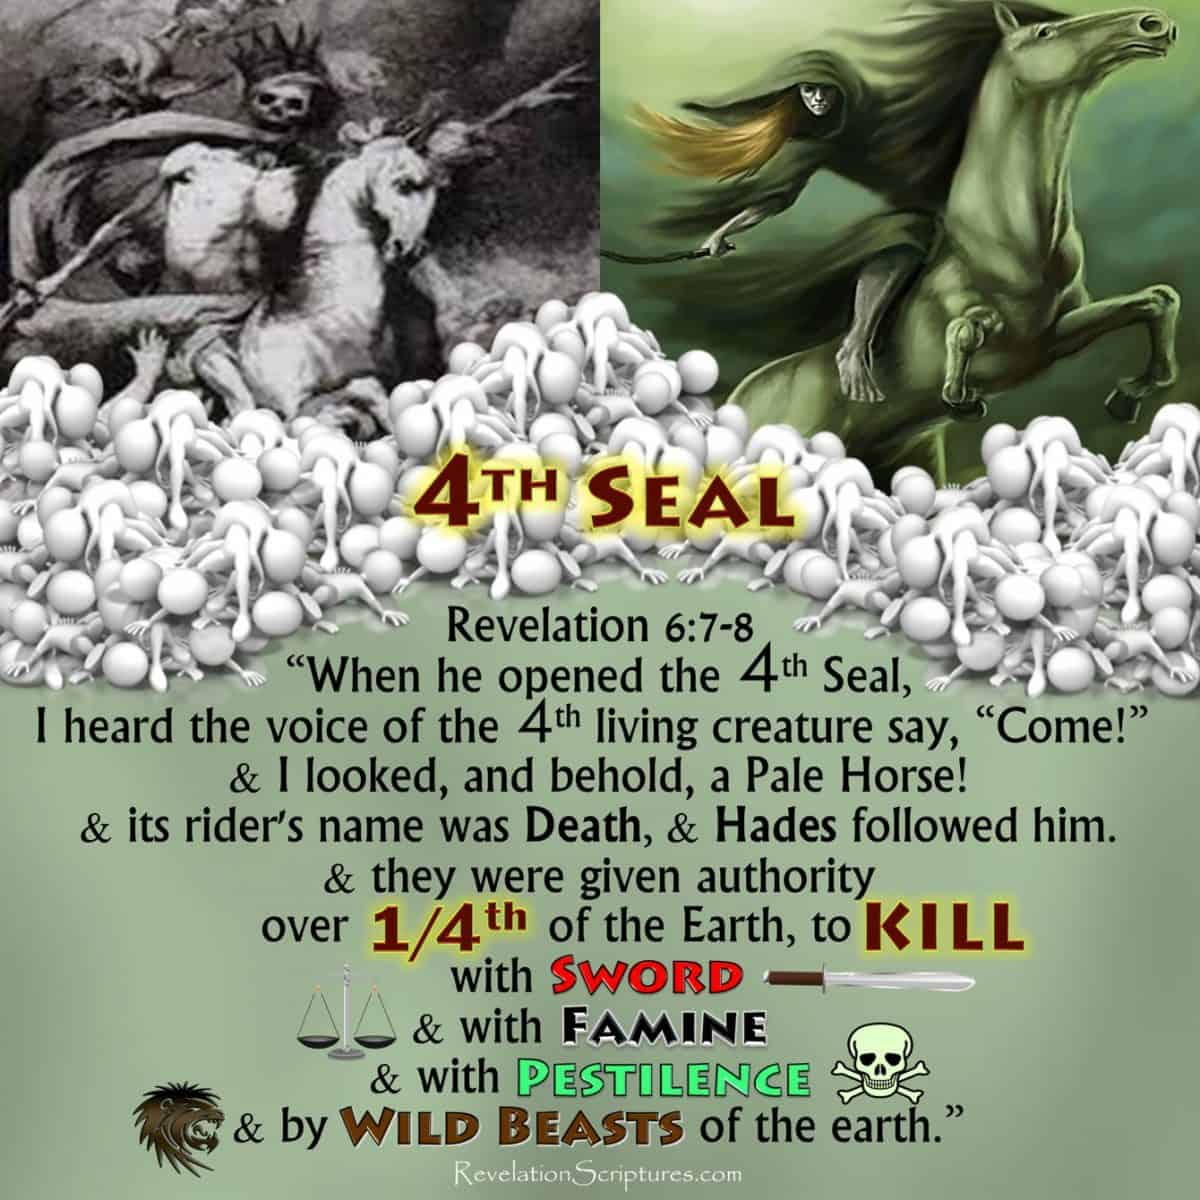 Fourth Seal,4th Seal,Hades,Hell,Kill 1/4th,Kill fourth,Kill fourth part of earth,World War Three,World War 3,WW3,Green Horse,Pale Green Horse,Sword,Famine,War,Hunger,Disease,pestilence,plague,death,animals,Death,wild beast,Book of Revelation,Apocalypse,Revelation of Jesus Christ,7 Seals, Seven Seals,Revelation 6,Revelation Chapter 6,4 Horsemen,Four Horsemen,Population Reduction,Population Decline,Population Decrease,Judgment